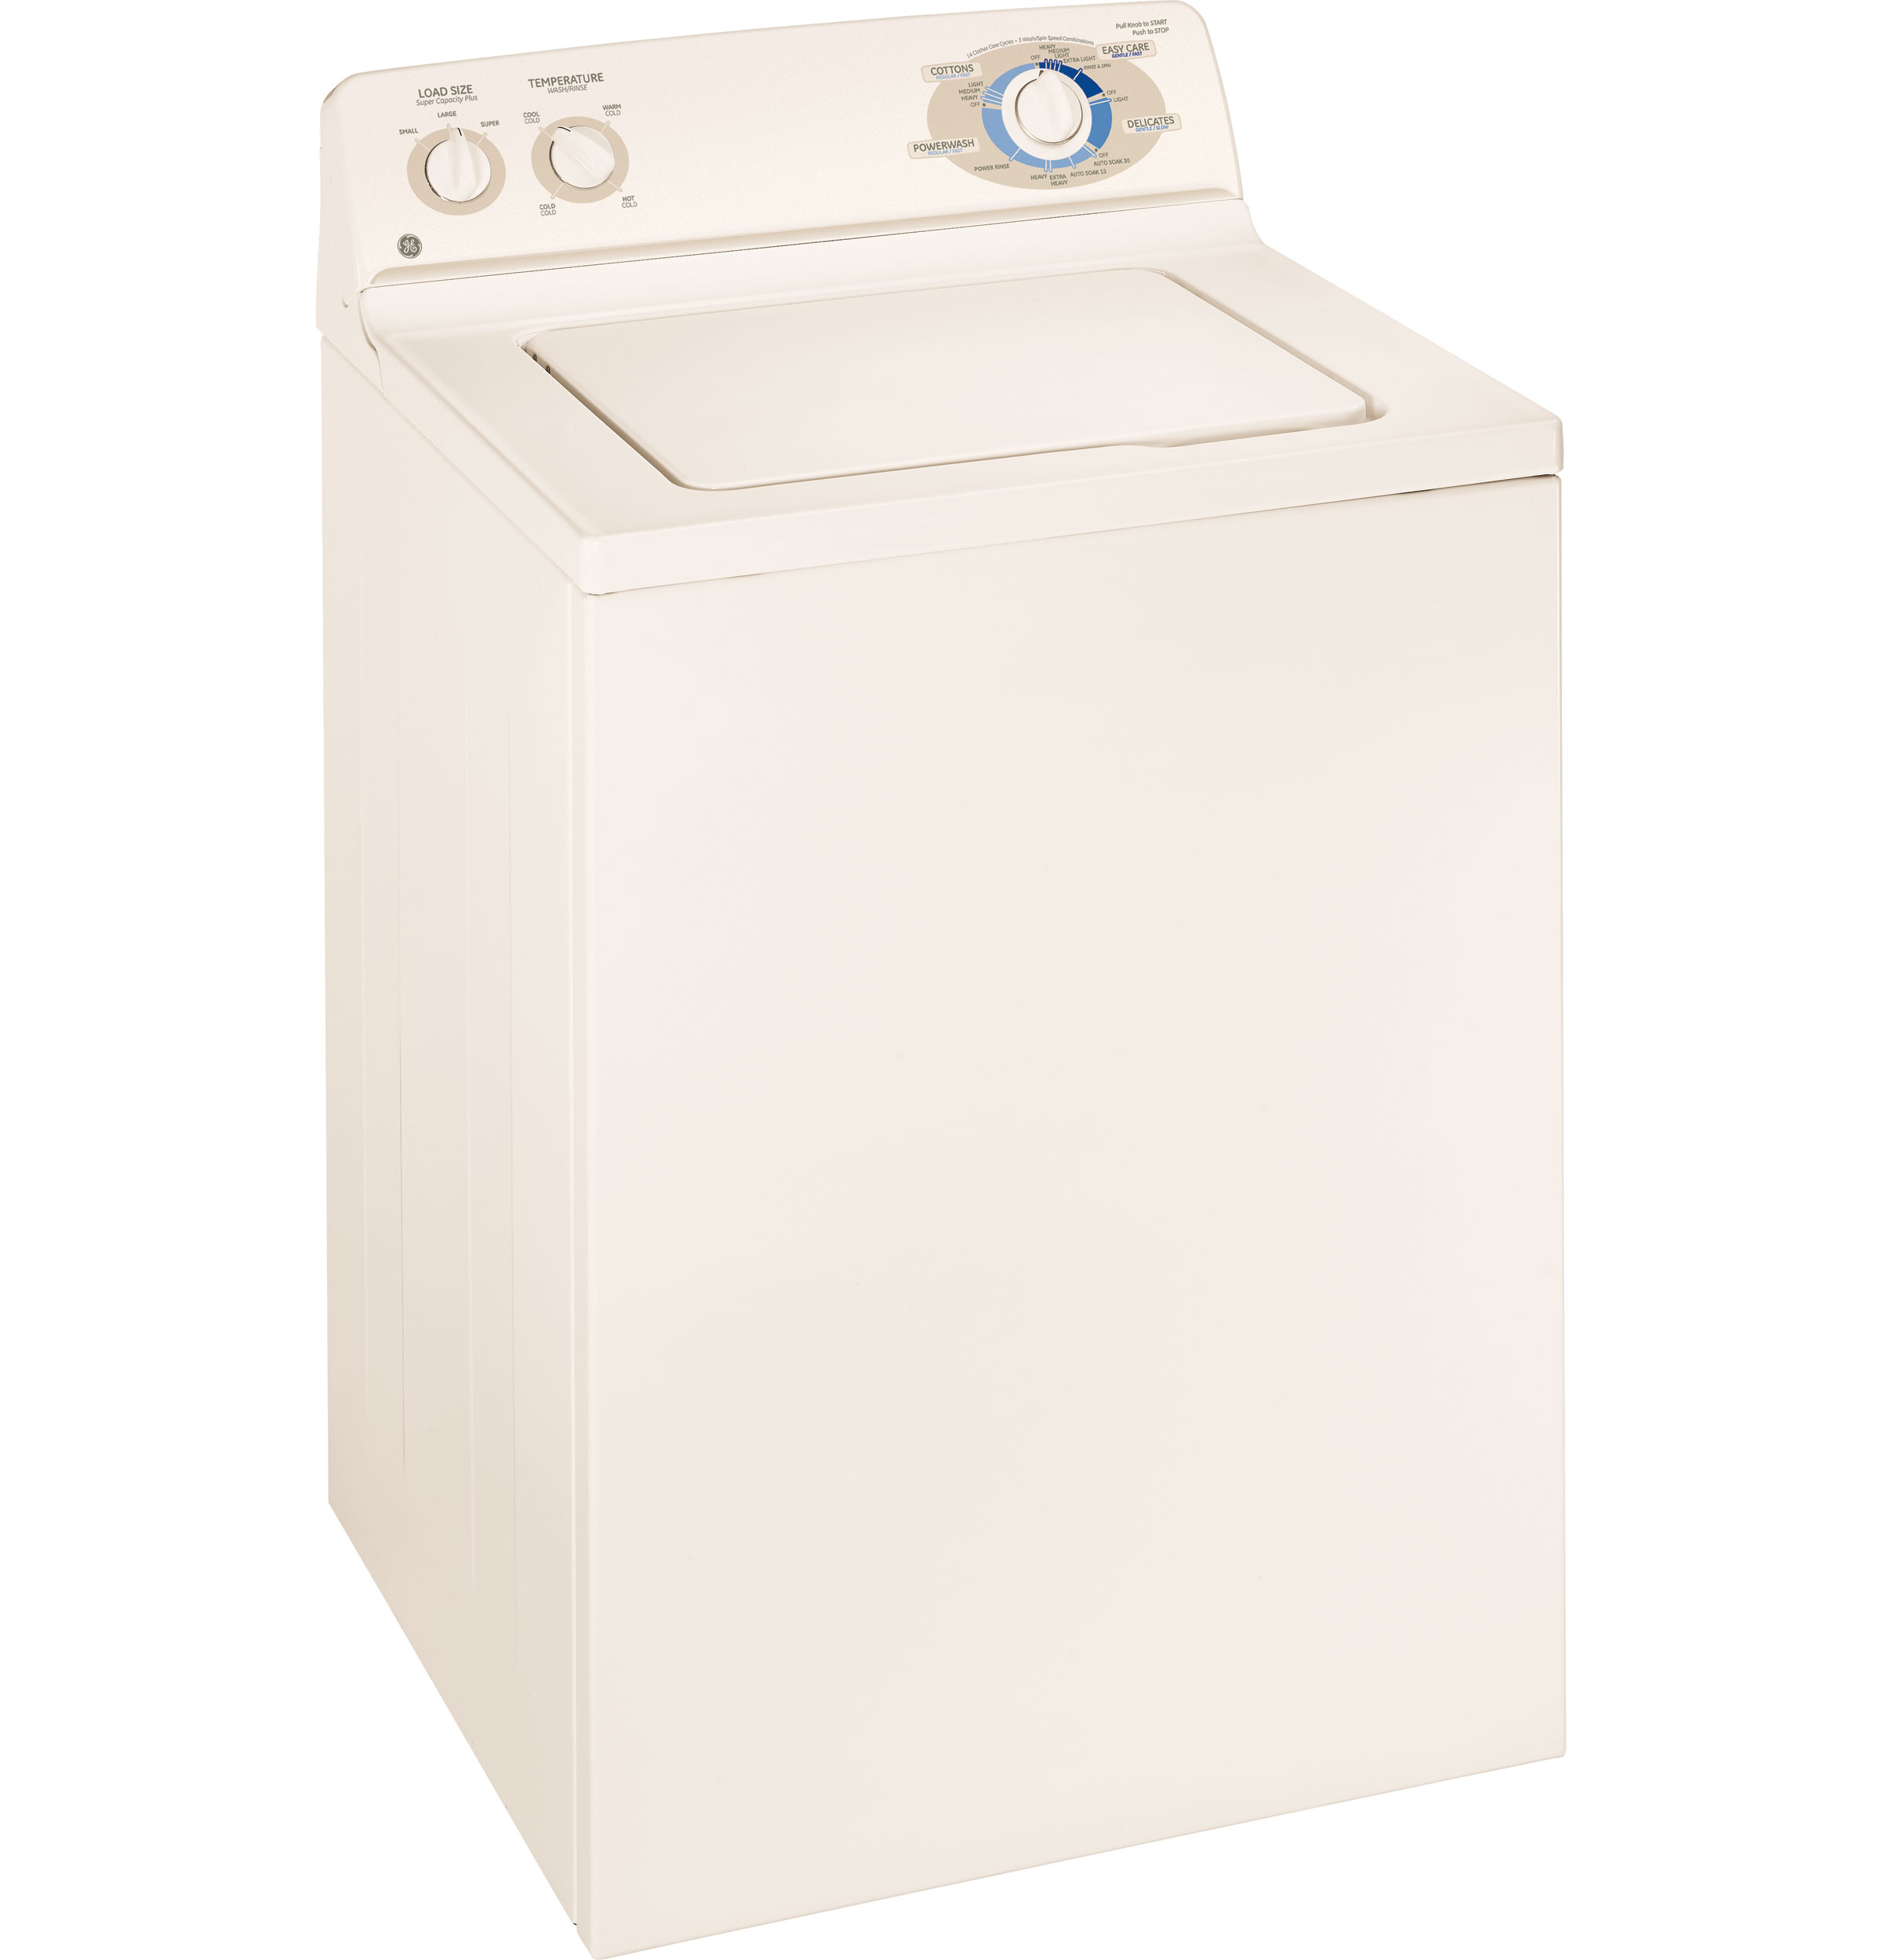 Ge Clothes Washer Replacement Parts | Reviewmotors co